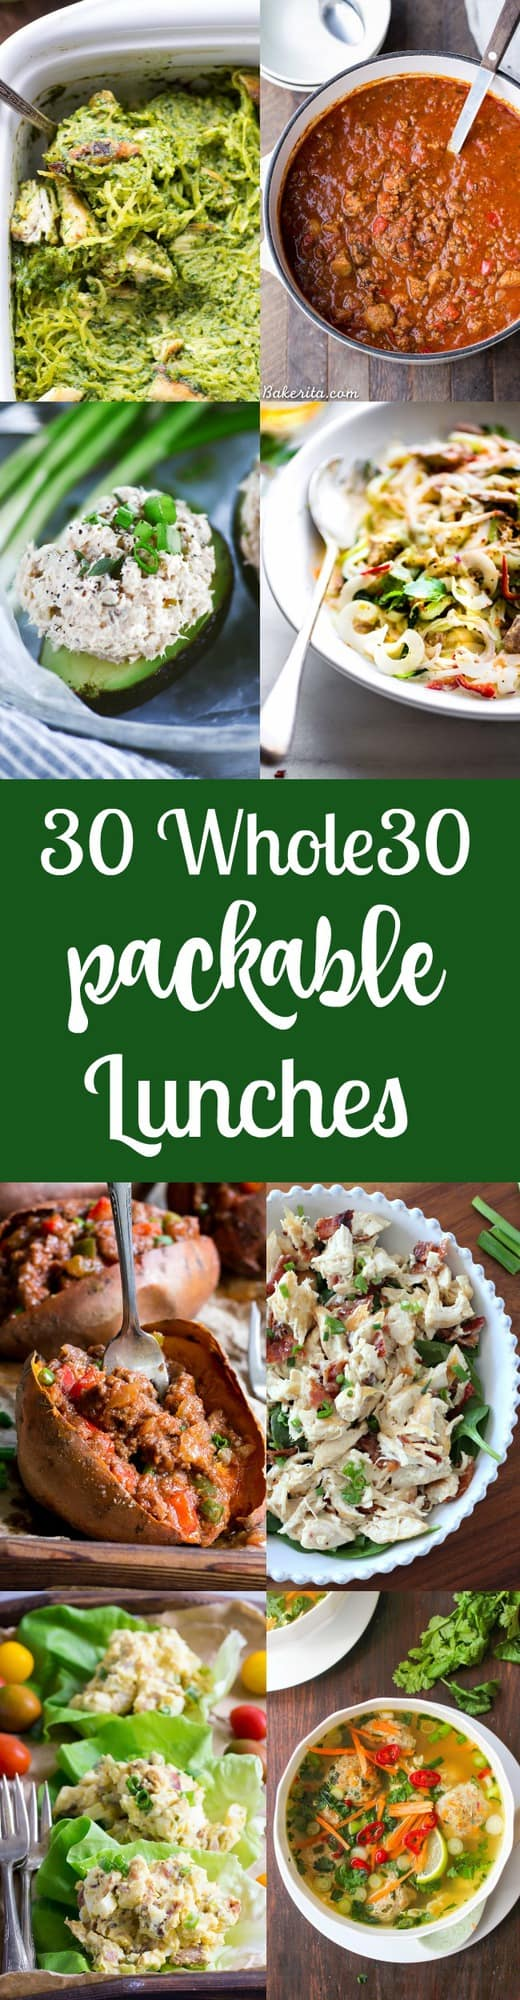 30 delicious, filling packable Paleo and Whole30 lunches for when you're on the go, plus what to pack your lunch in to keep it fresh and ready to eat!  All gluten free, dairy free, paleo and Whole30 compliant